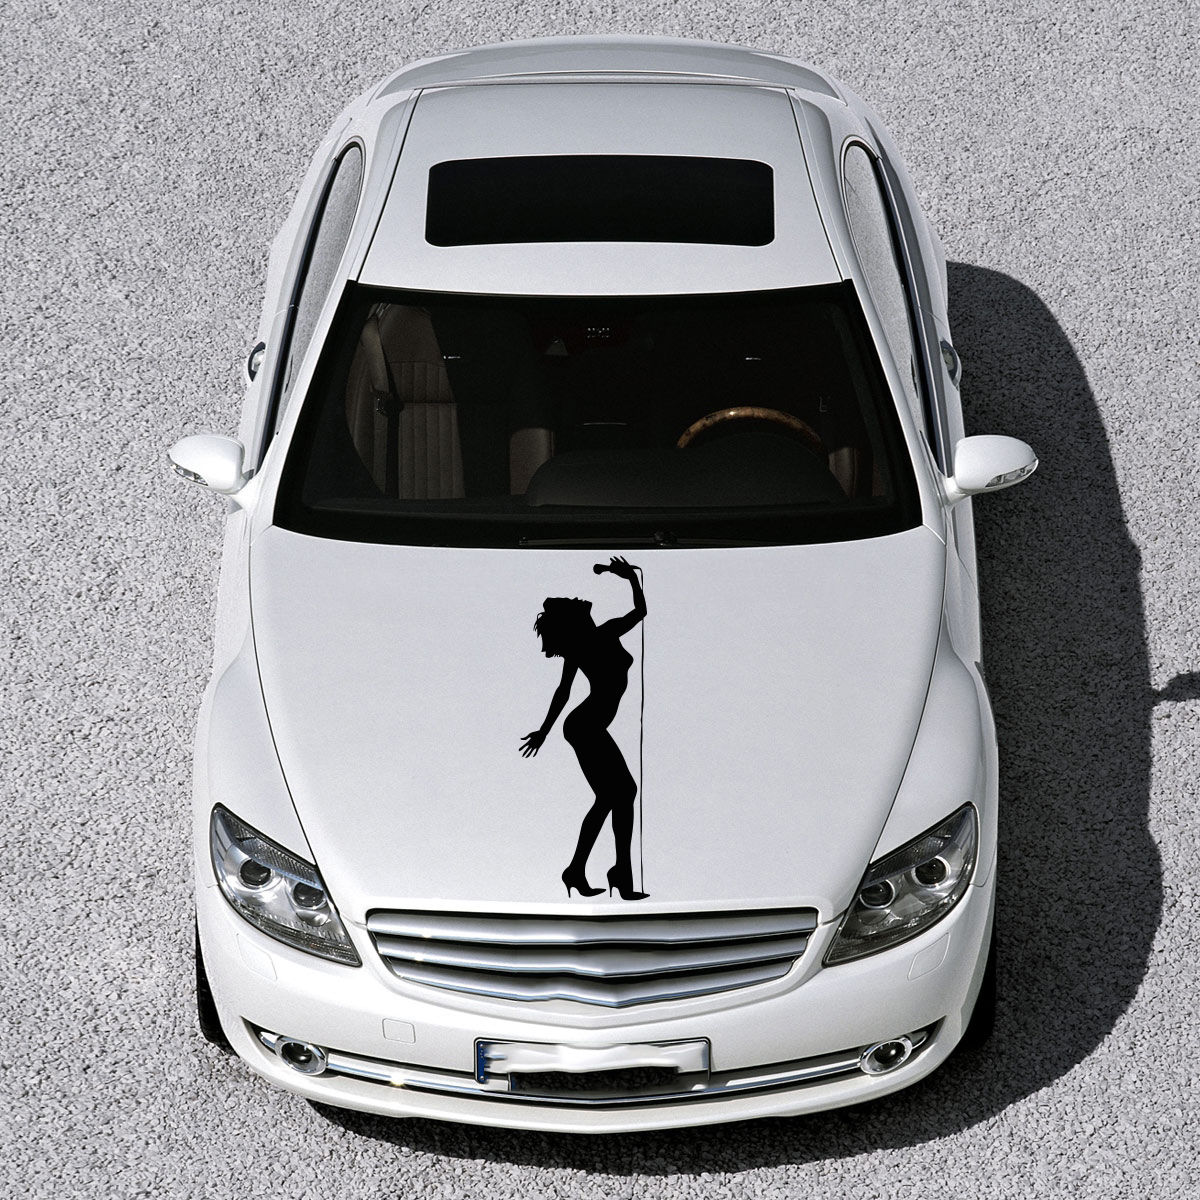 Car sticker design shop - Beautiful Girl Figure Art Murals Design Hood Car Vinyl Sticker Decals Sv1010